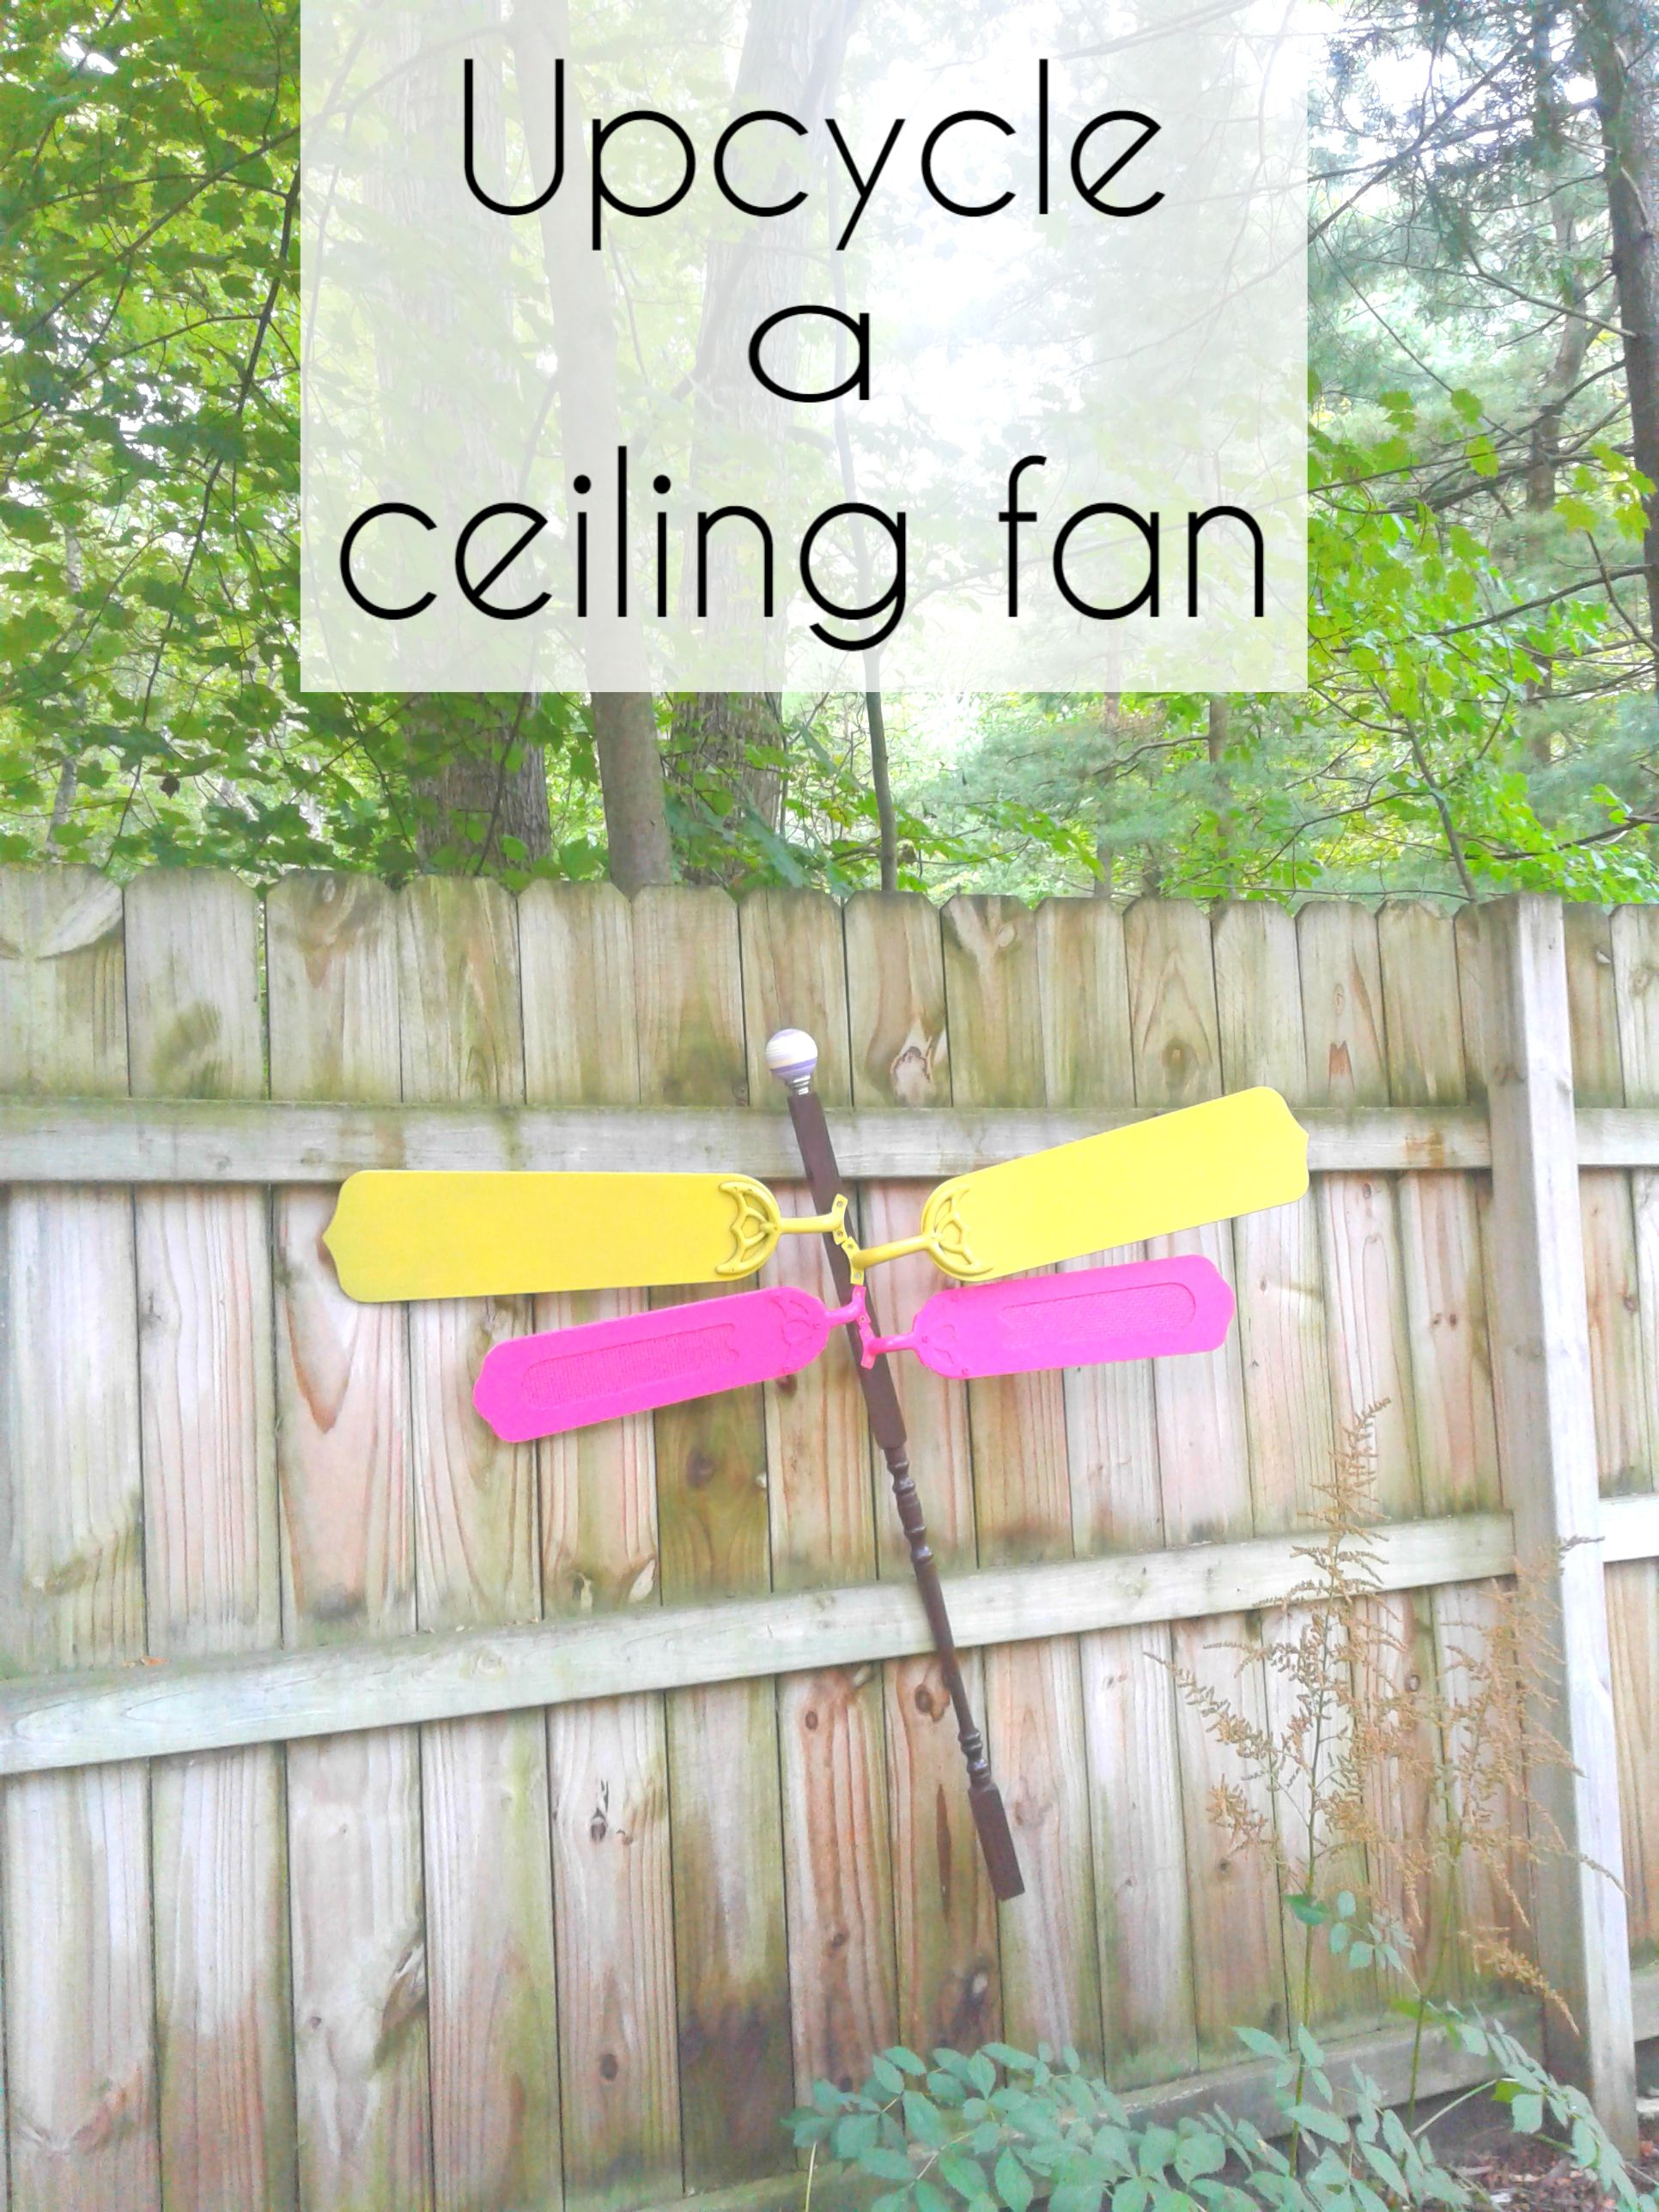 Upcycle ceiling fan blades into a dragonfly for garden decor or yard ...